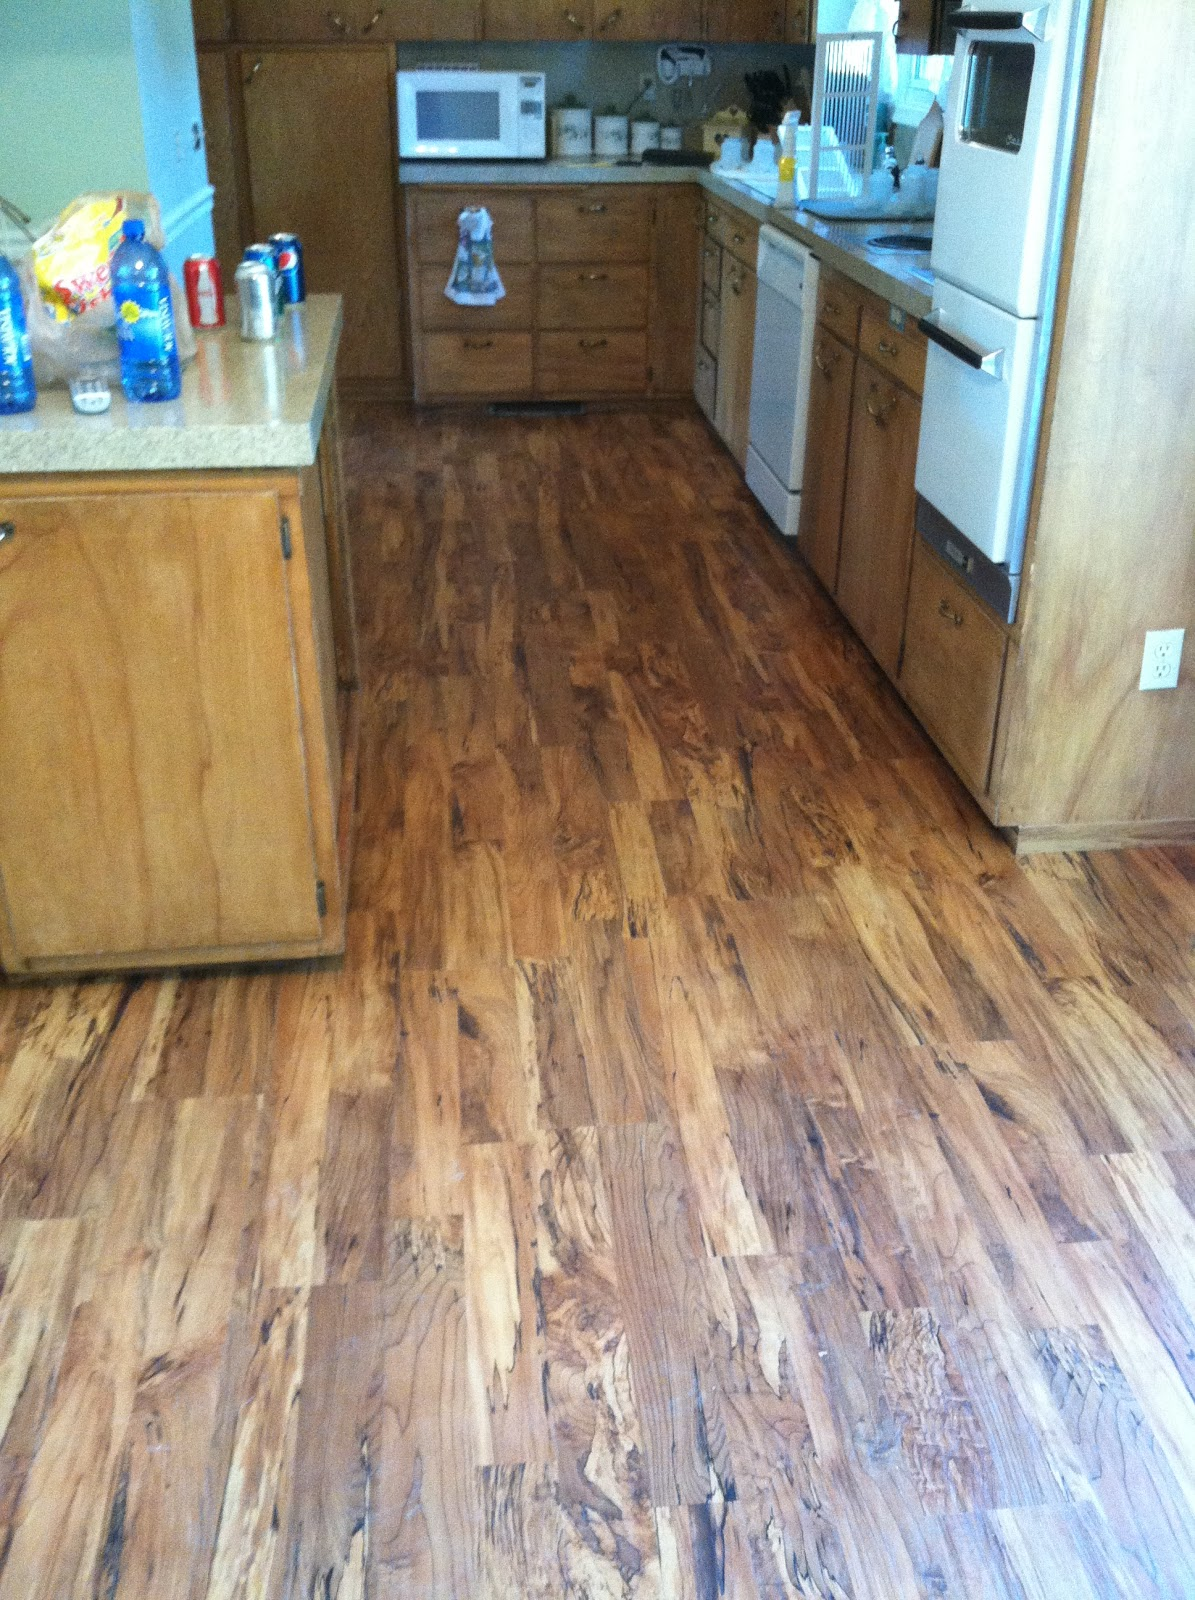 Spalted Maple Honey Laminate Floor